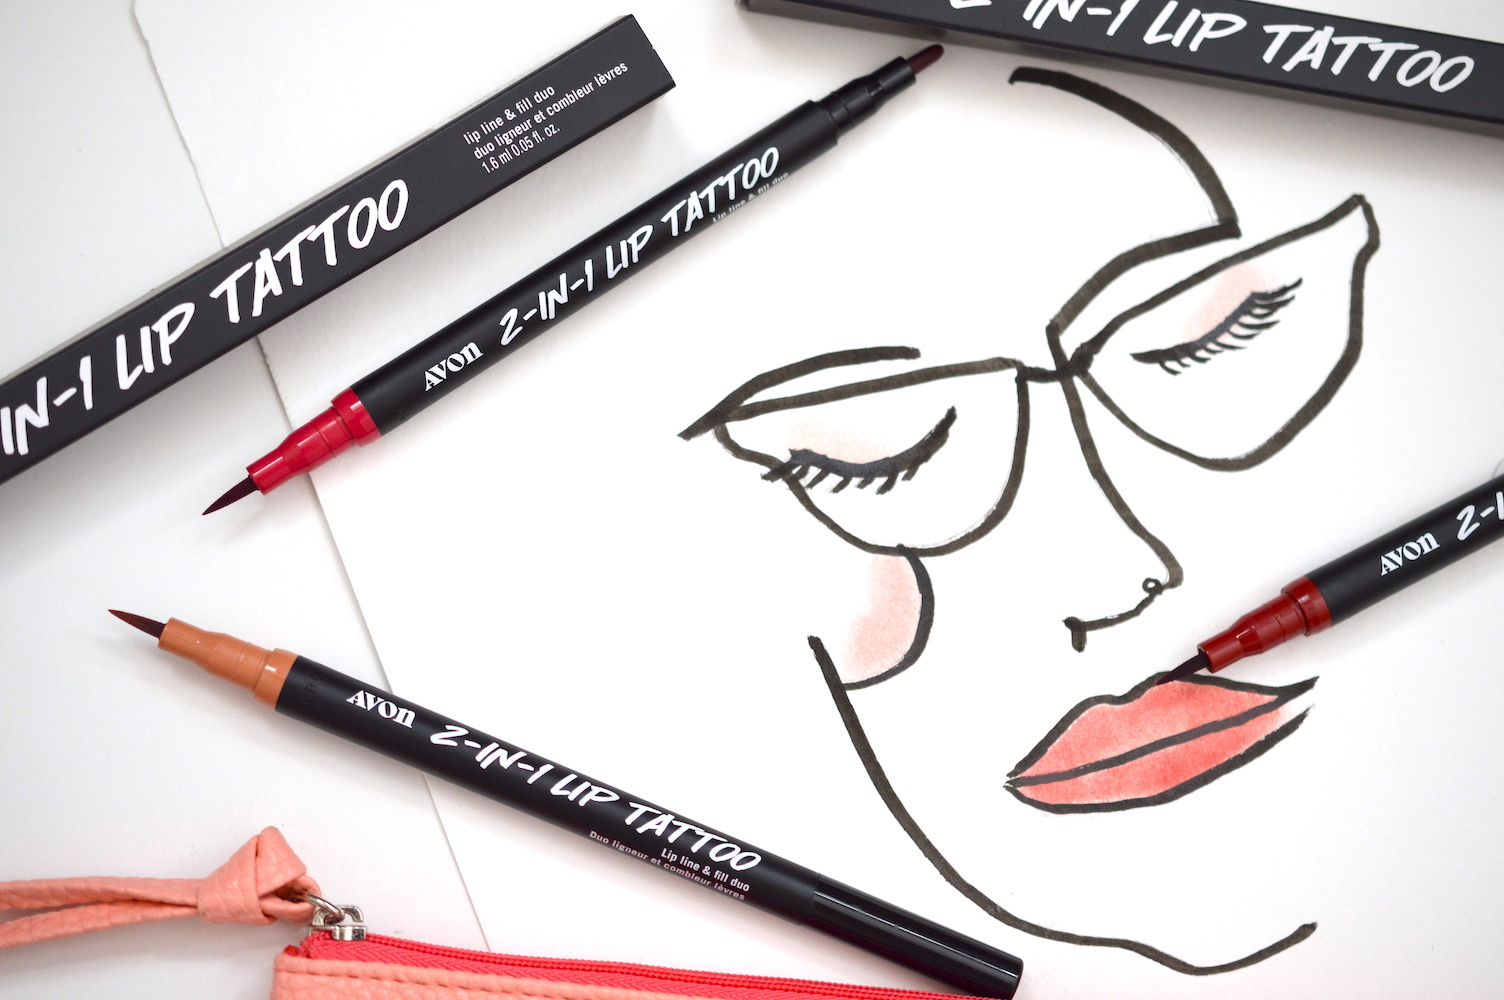 Review AVON 2-in-1 Lip Tattoo Lip Line & Fill Duo